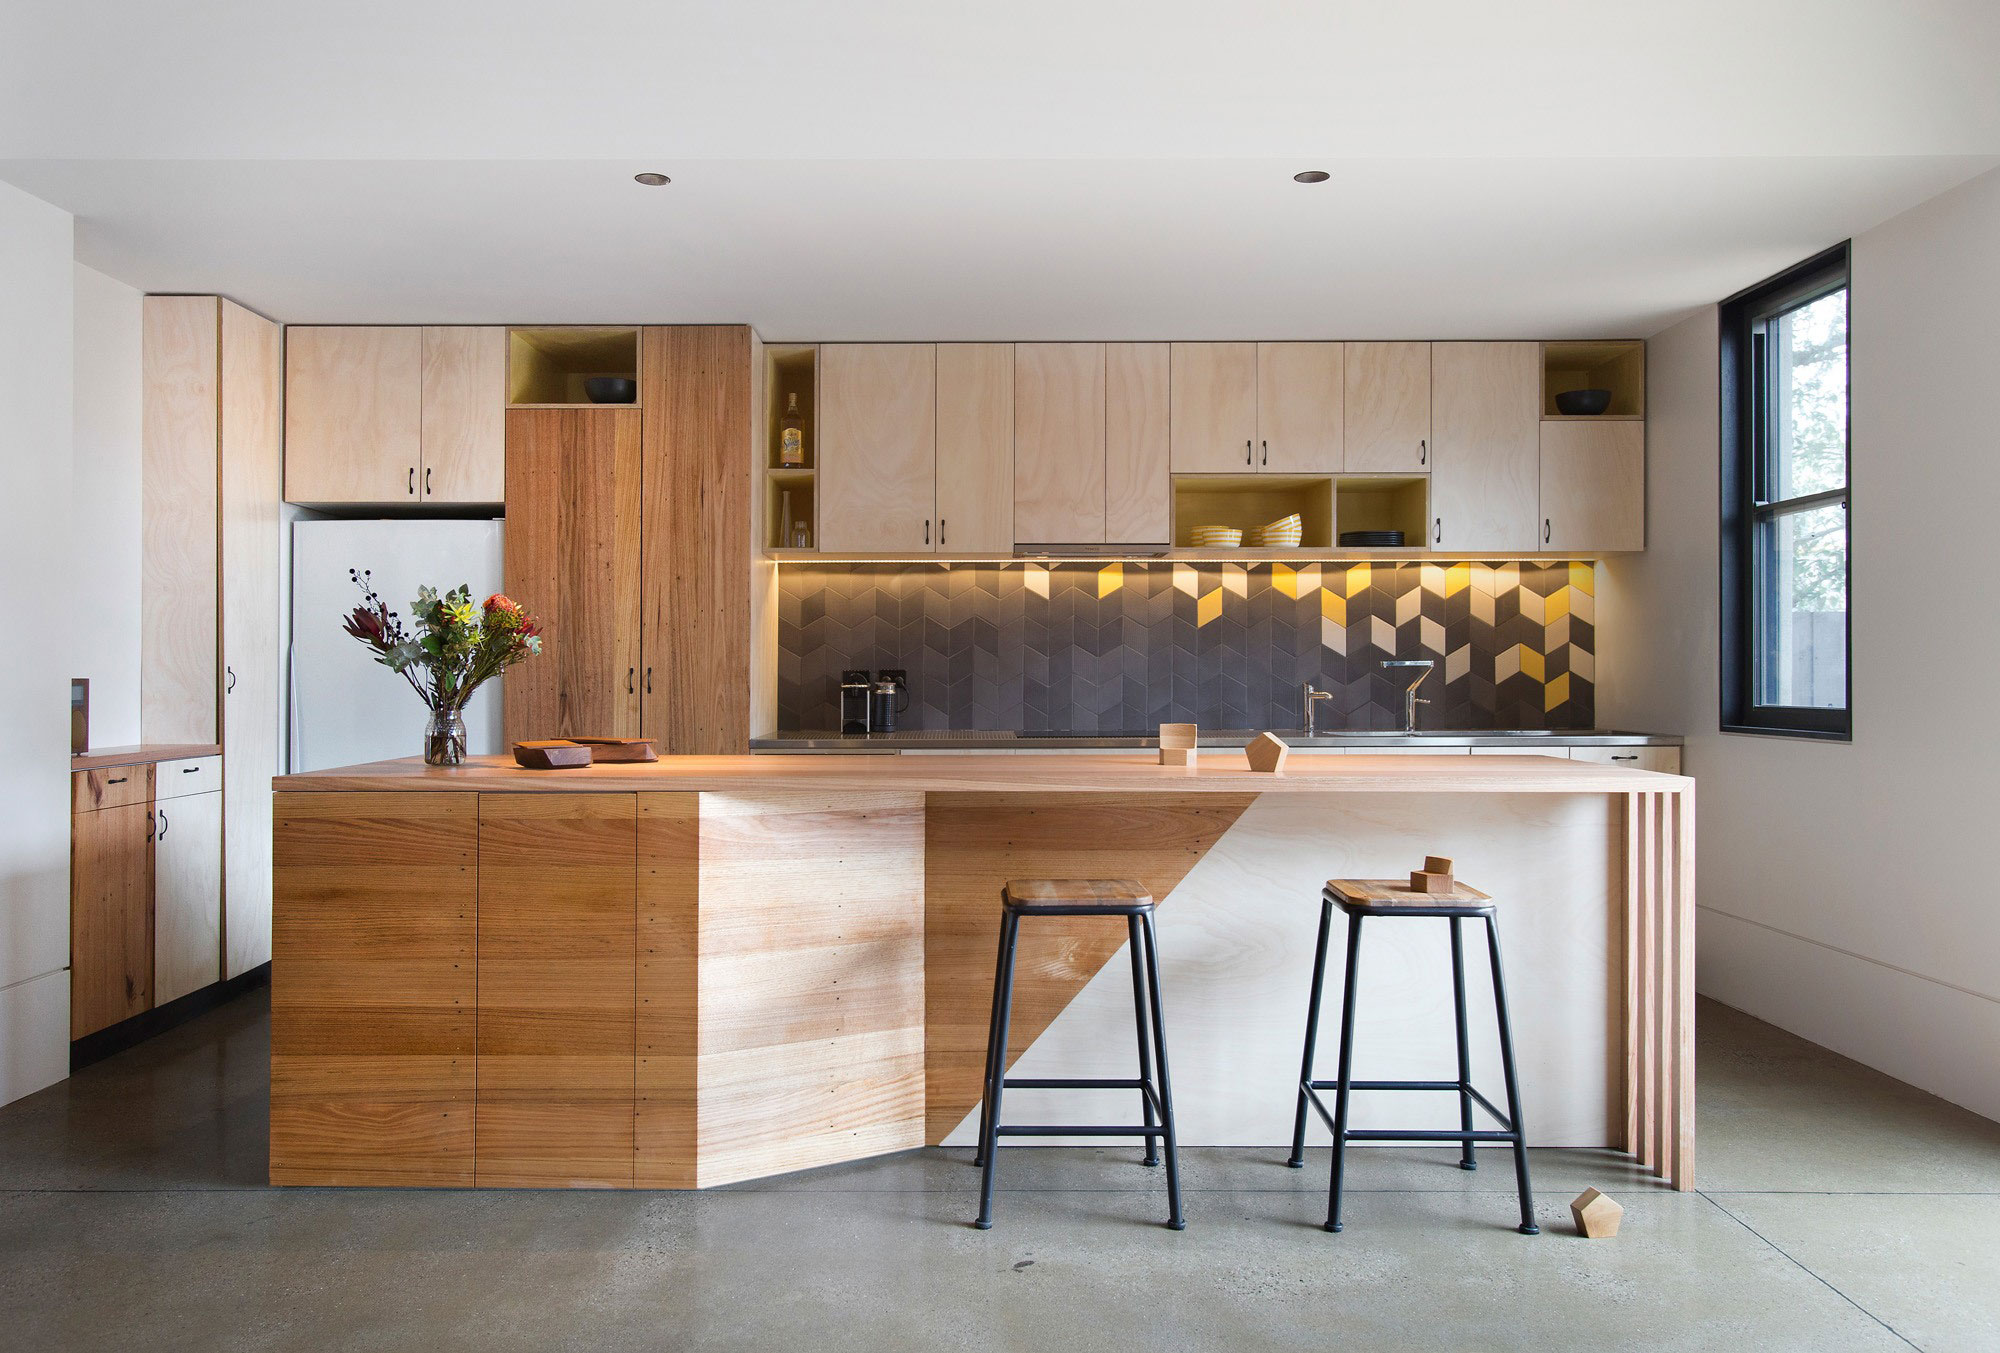 50 Best Modern Kitchen Design Ideas for 2017 on Modern Kitchens  id=98439